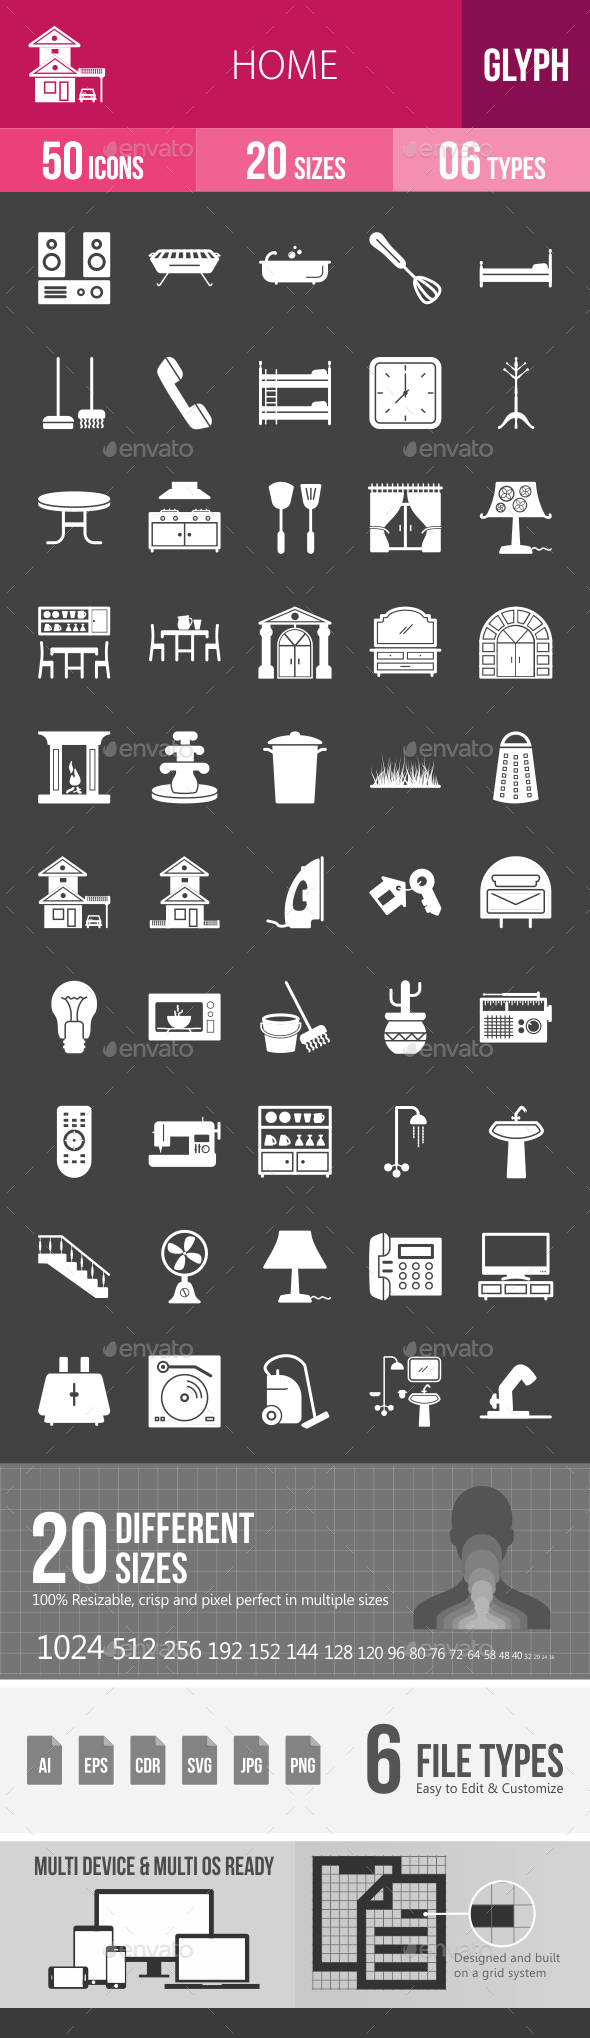 Home Glyph Inverted Icons - Icons